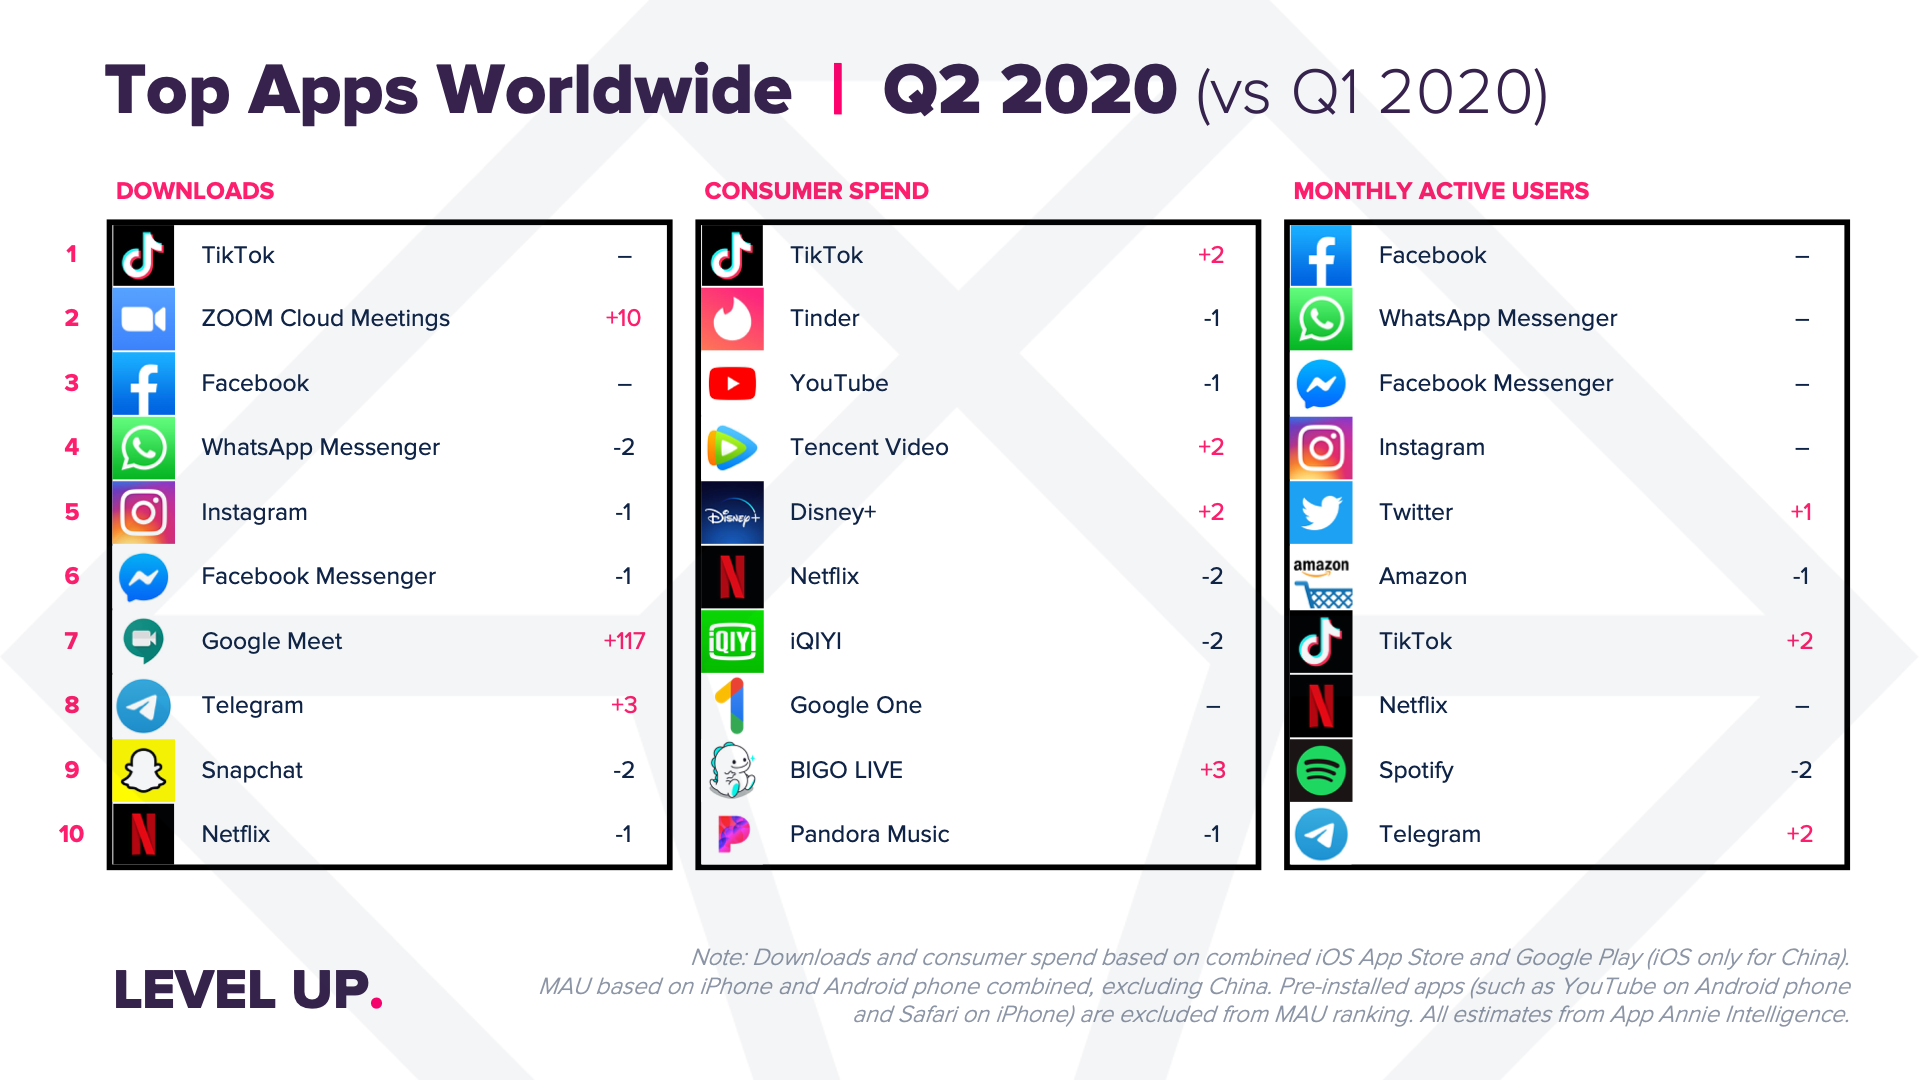 Mobile App Usage Grew 40% in Q2 2020 to Hit an All Time High of 200 Billion Hours: App Annie